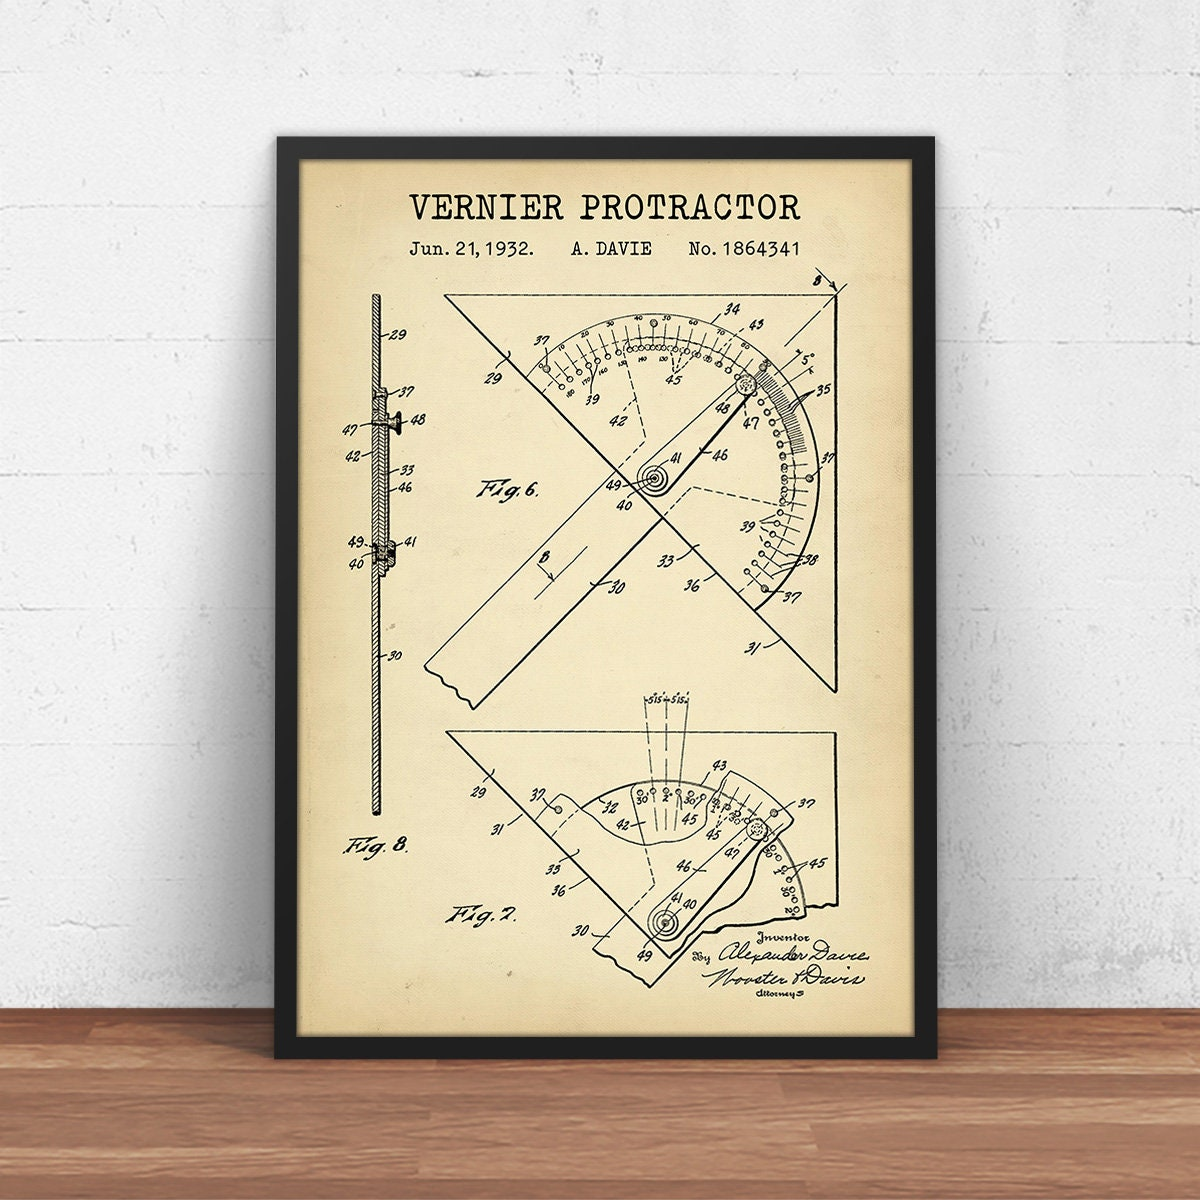 Vernier Protractor Patent Print, Technical drawing tool, Architect Gifts,  Drafting Tools, Office Decor, Gift For Engineer, Geometry Wall Art